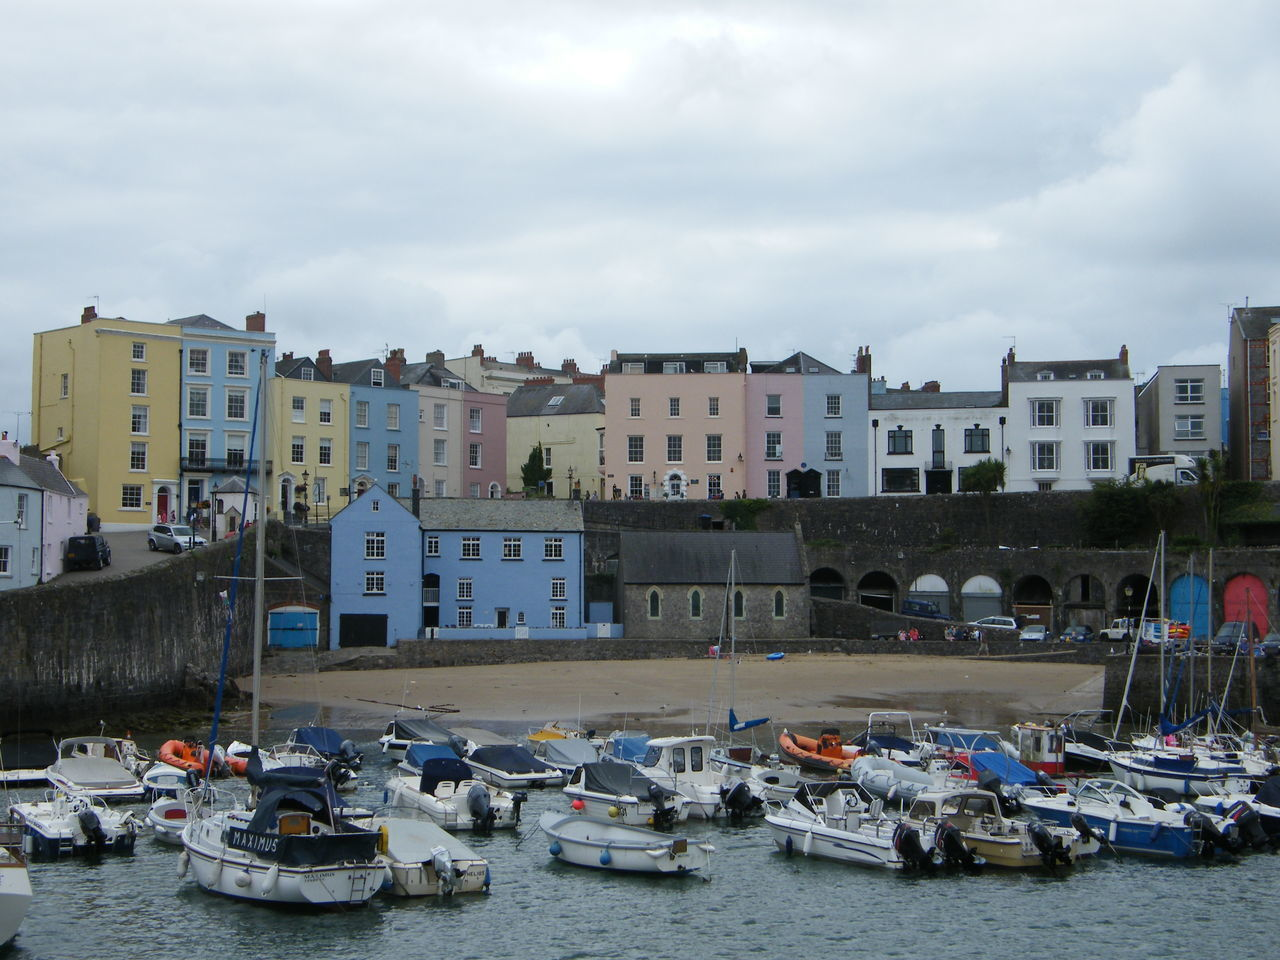 Architecture Building Exterior Built Structure Cityscape Day Large Group Of People Moored Nature Nautical Vessel Outdoors Pembrokeshire Pembrokeshire Coast Pembrokeshire Coastal Path Residential Building Seaside Seaside Town Sky Tenby Tenby Harbour Transportation Travel Destinations Water